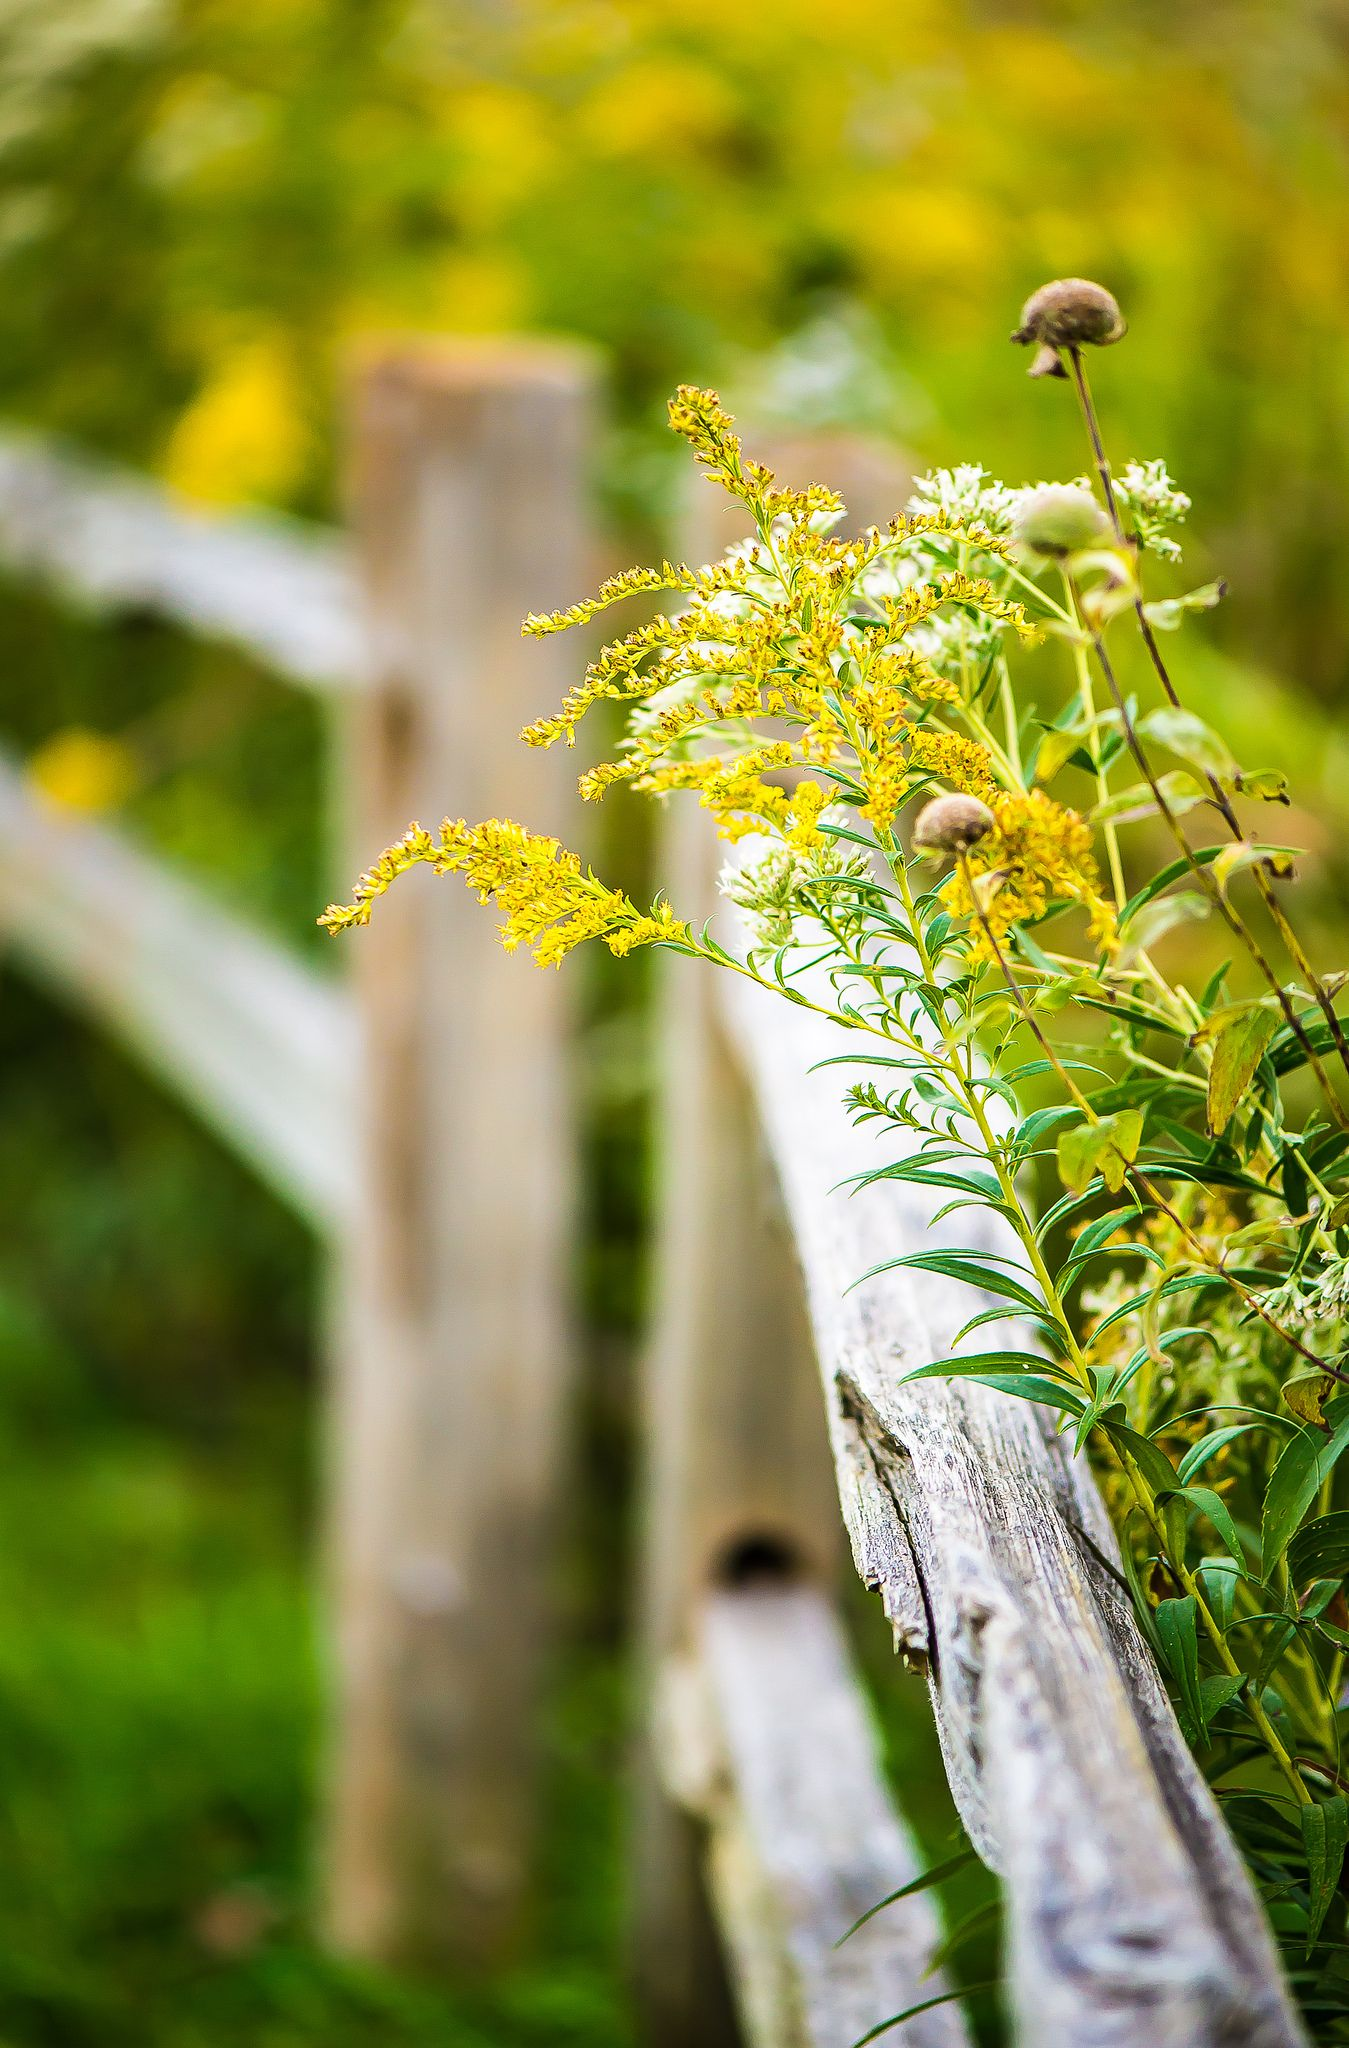 happy fence friday is part of Country fences - Explore Vicki Maher's photos on Flickr  Vicki Maher has uploaded 232 photos to Flickr